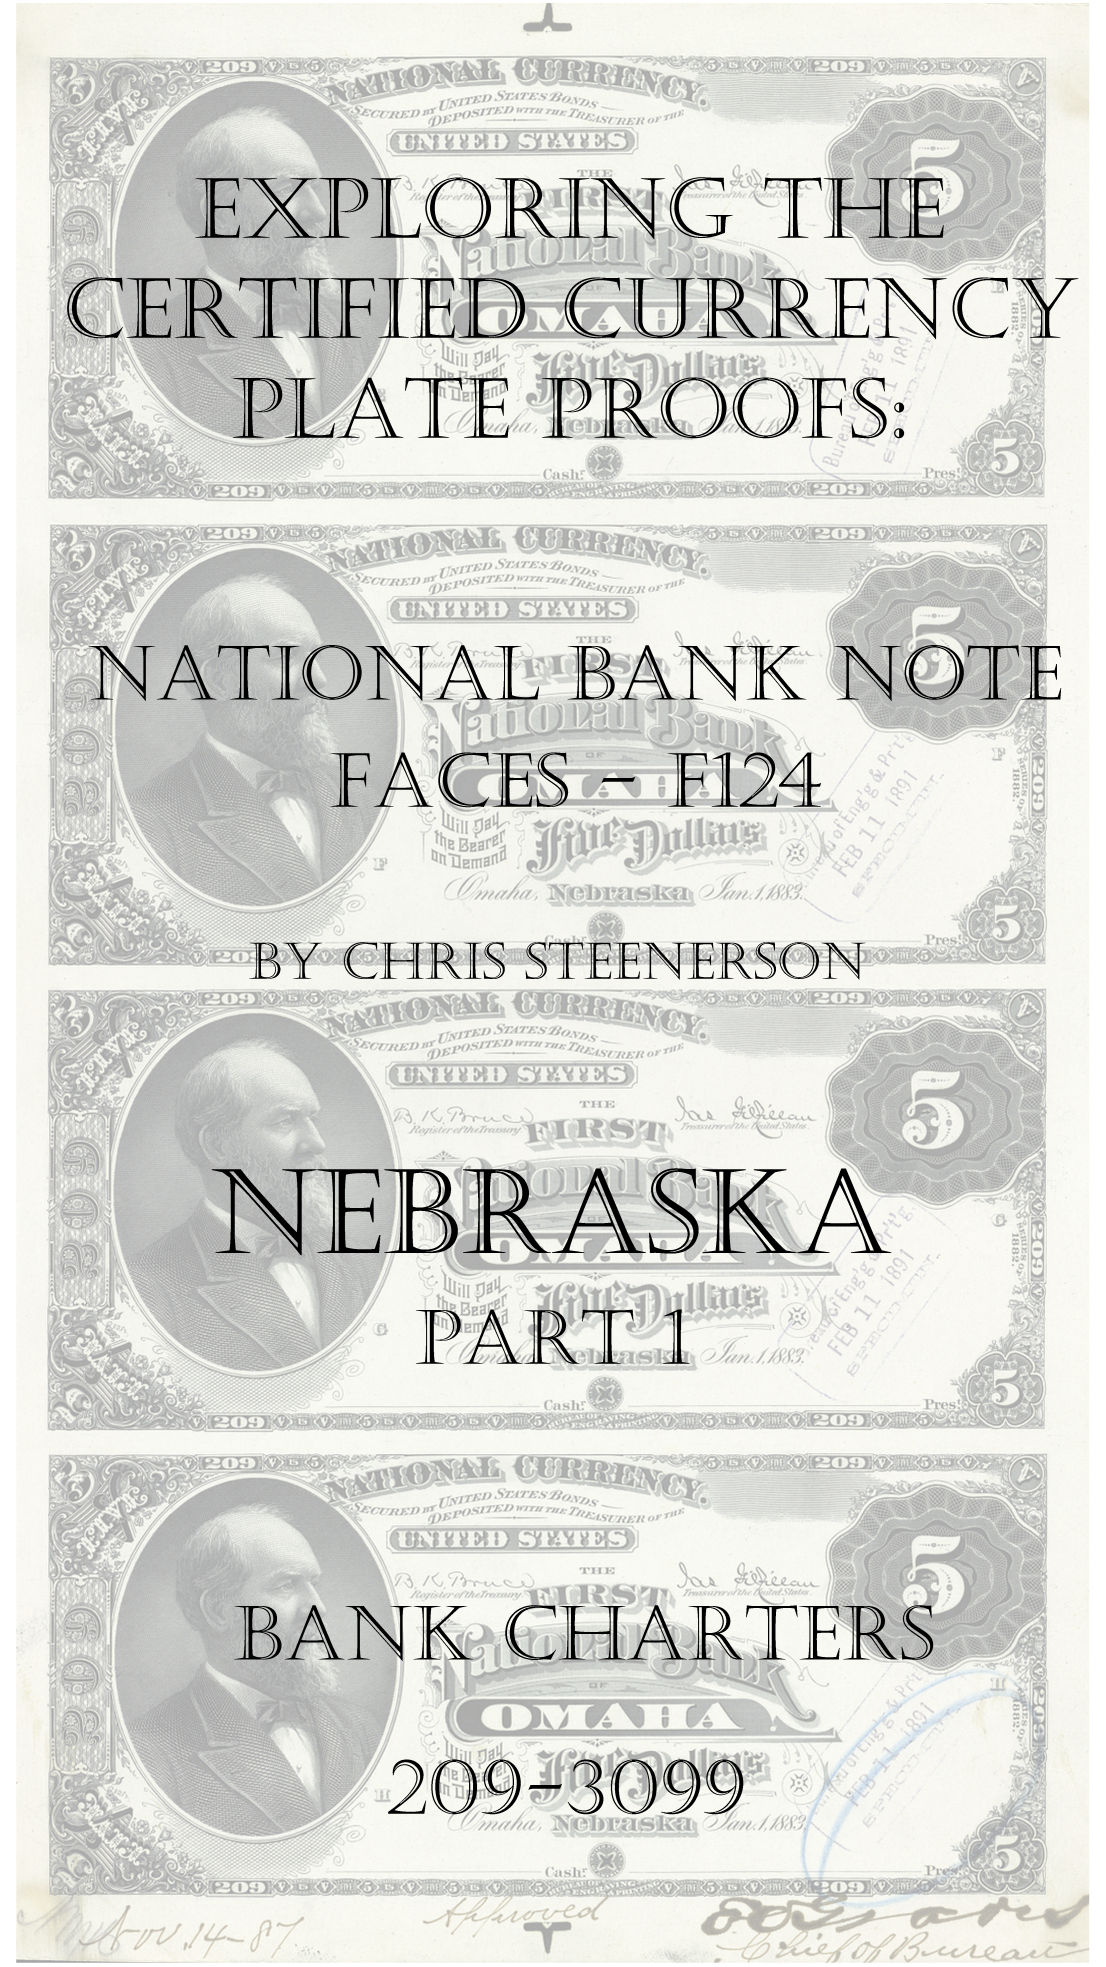 Nebraska National Bank Note Currency Proofs